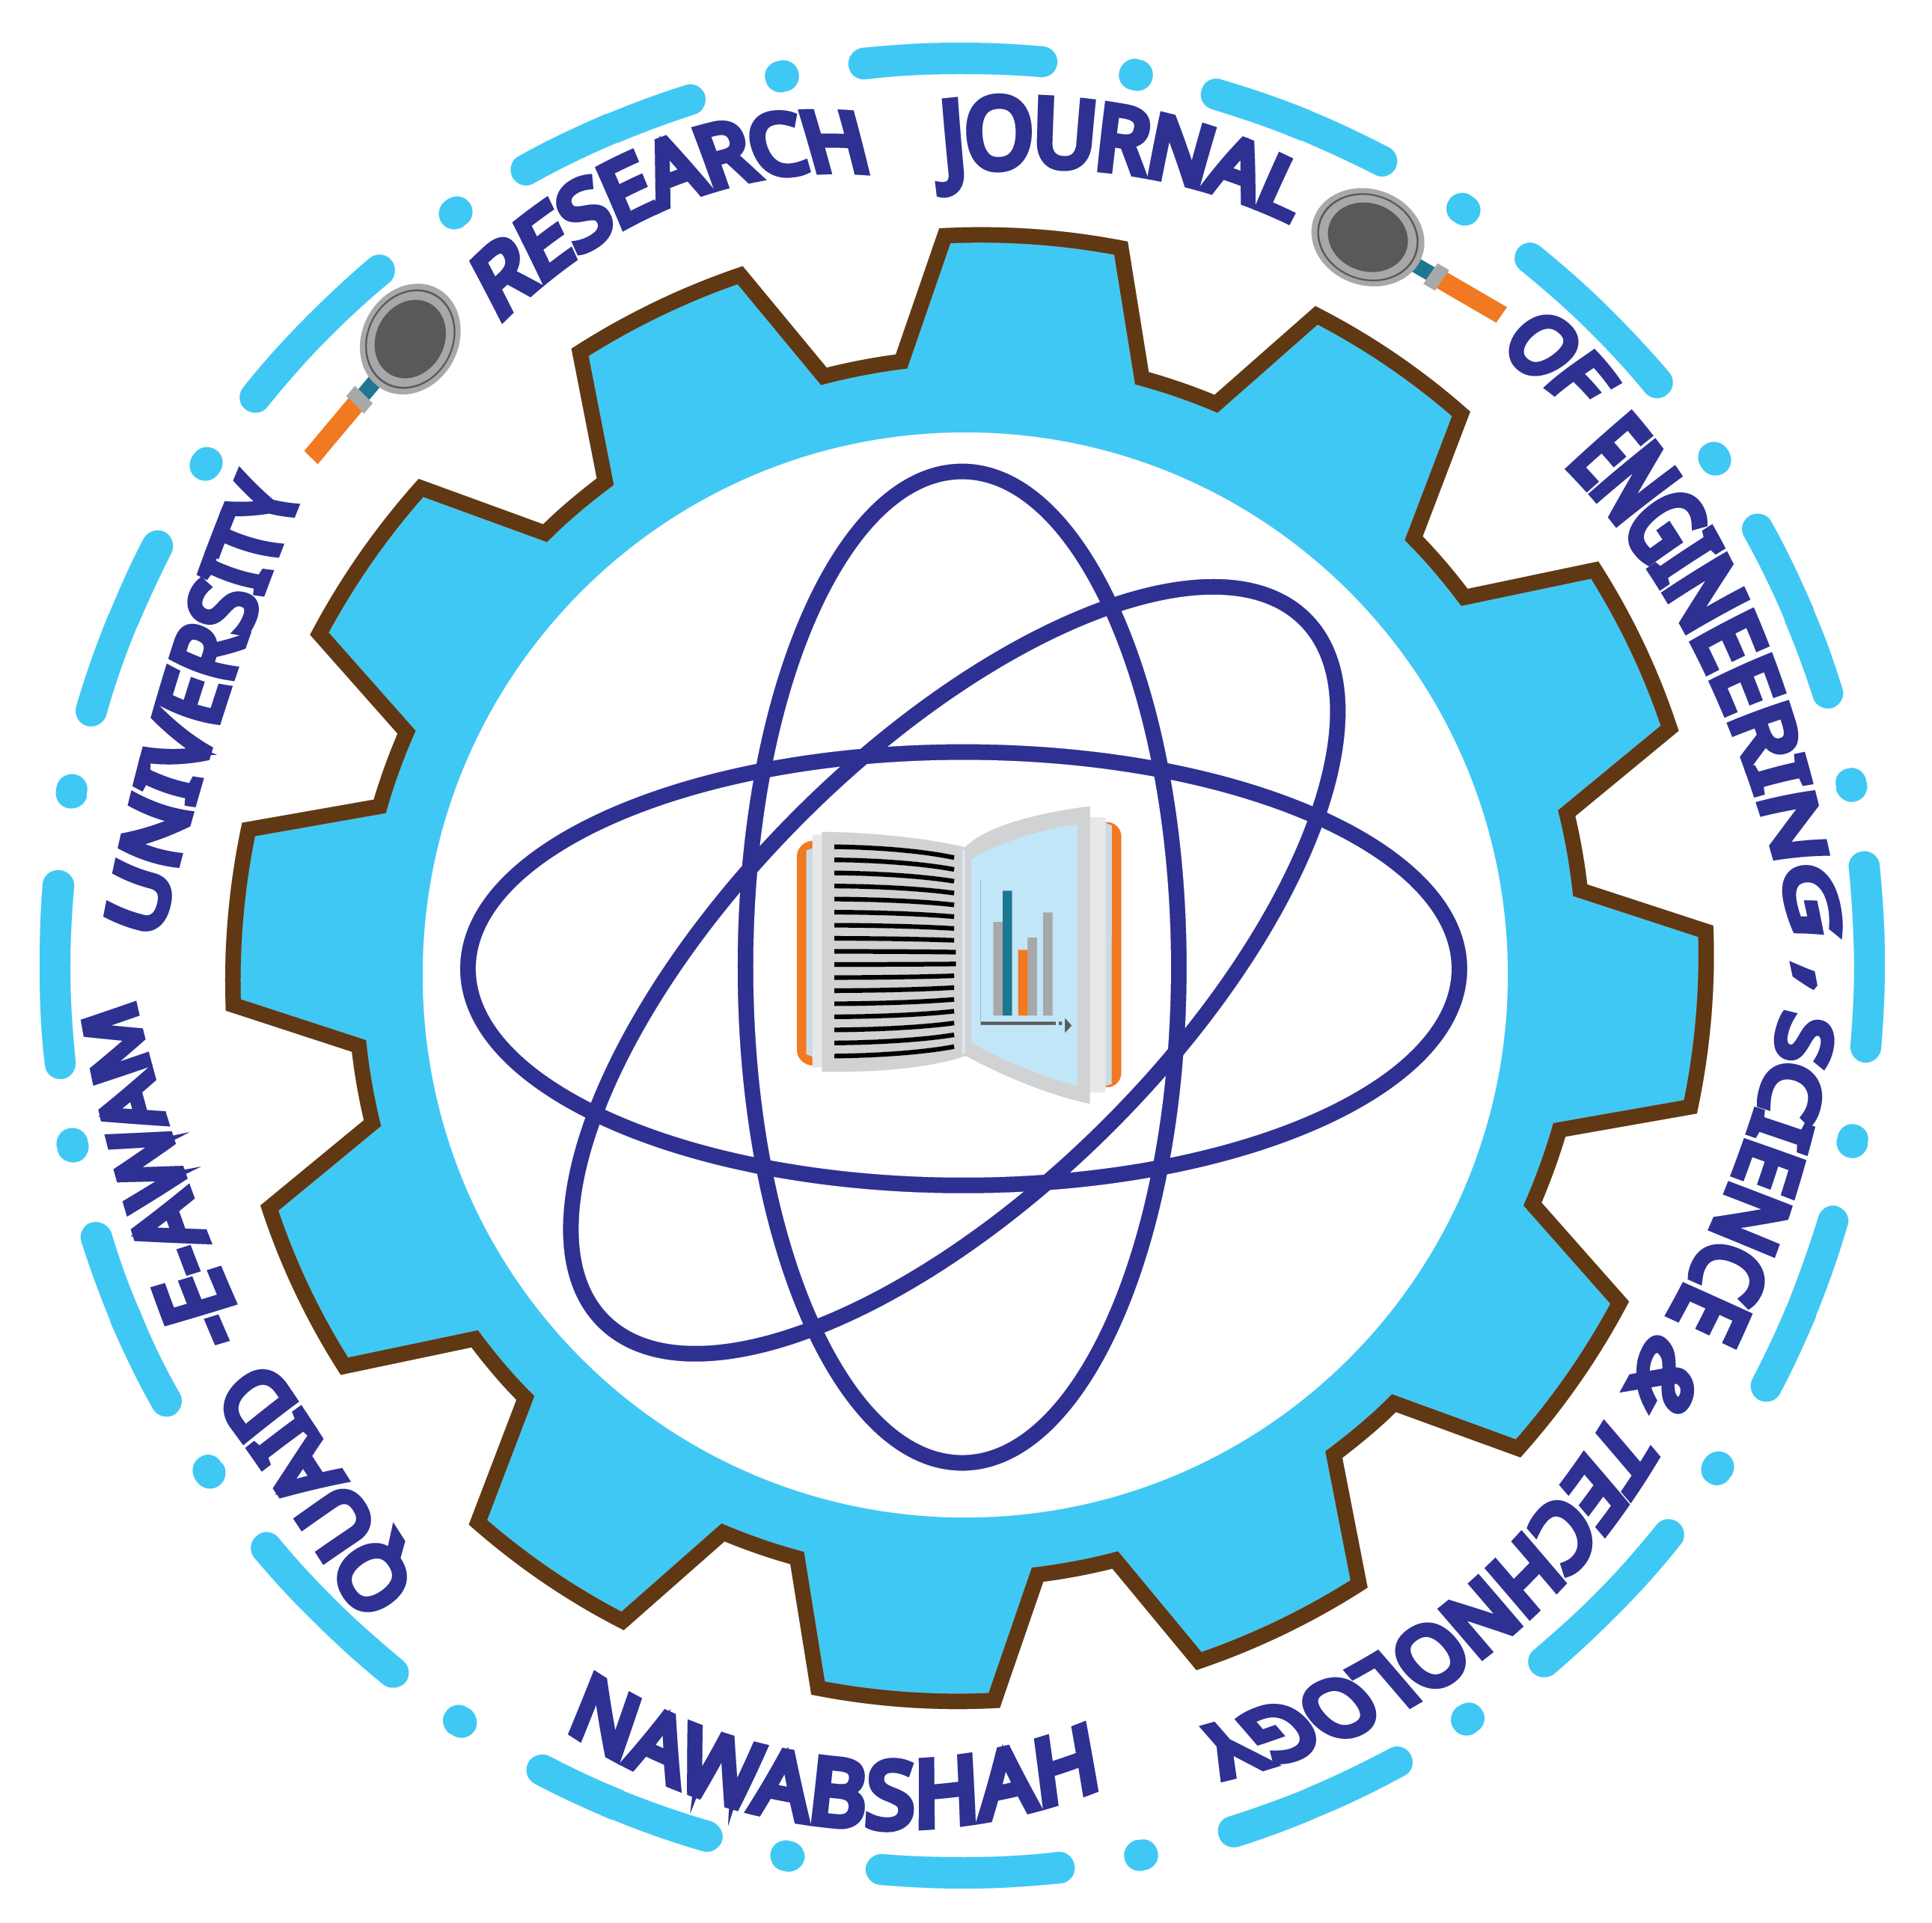 Quaid-e-Awam University Research Journal of Engineering, Science & Technology